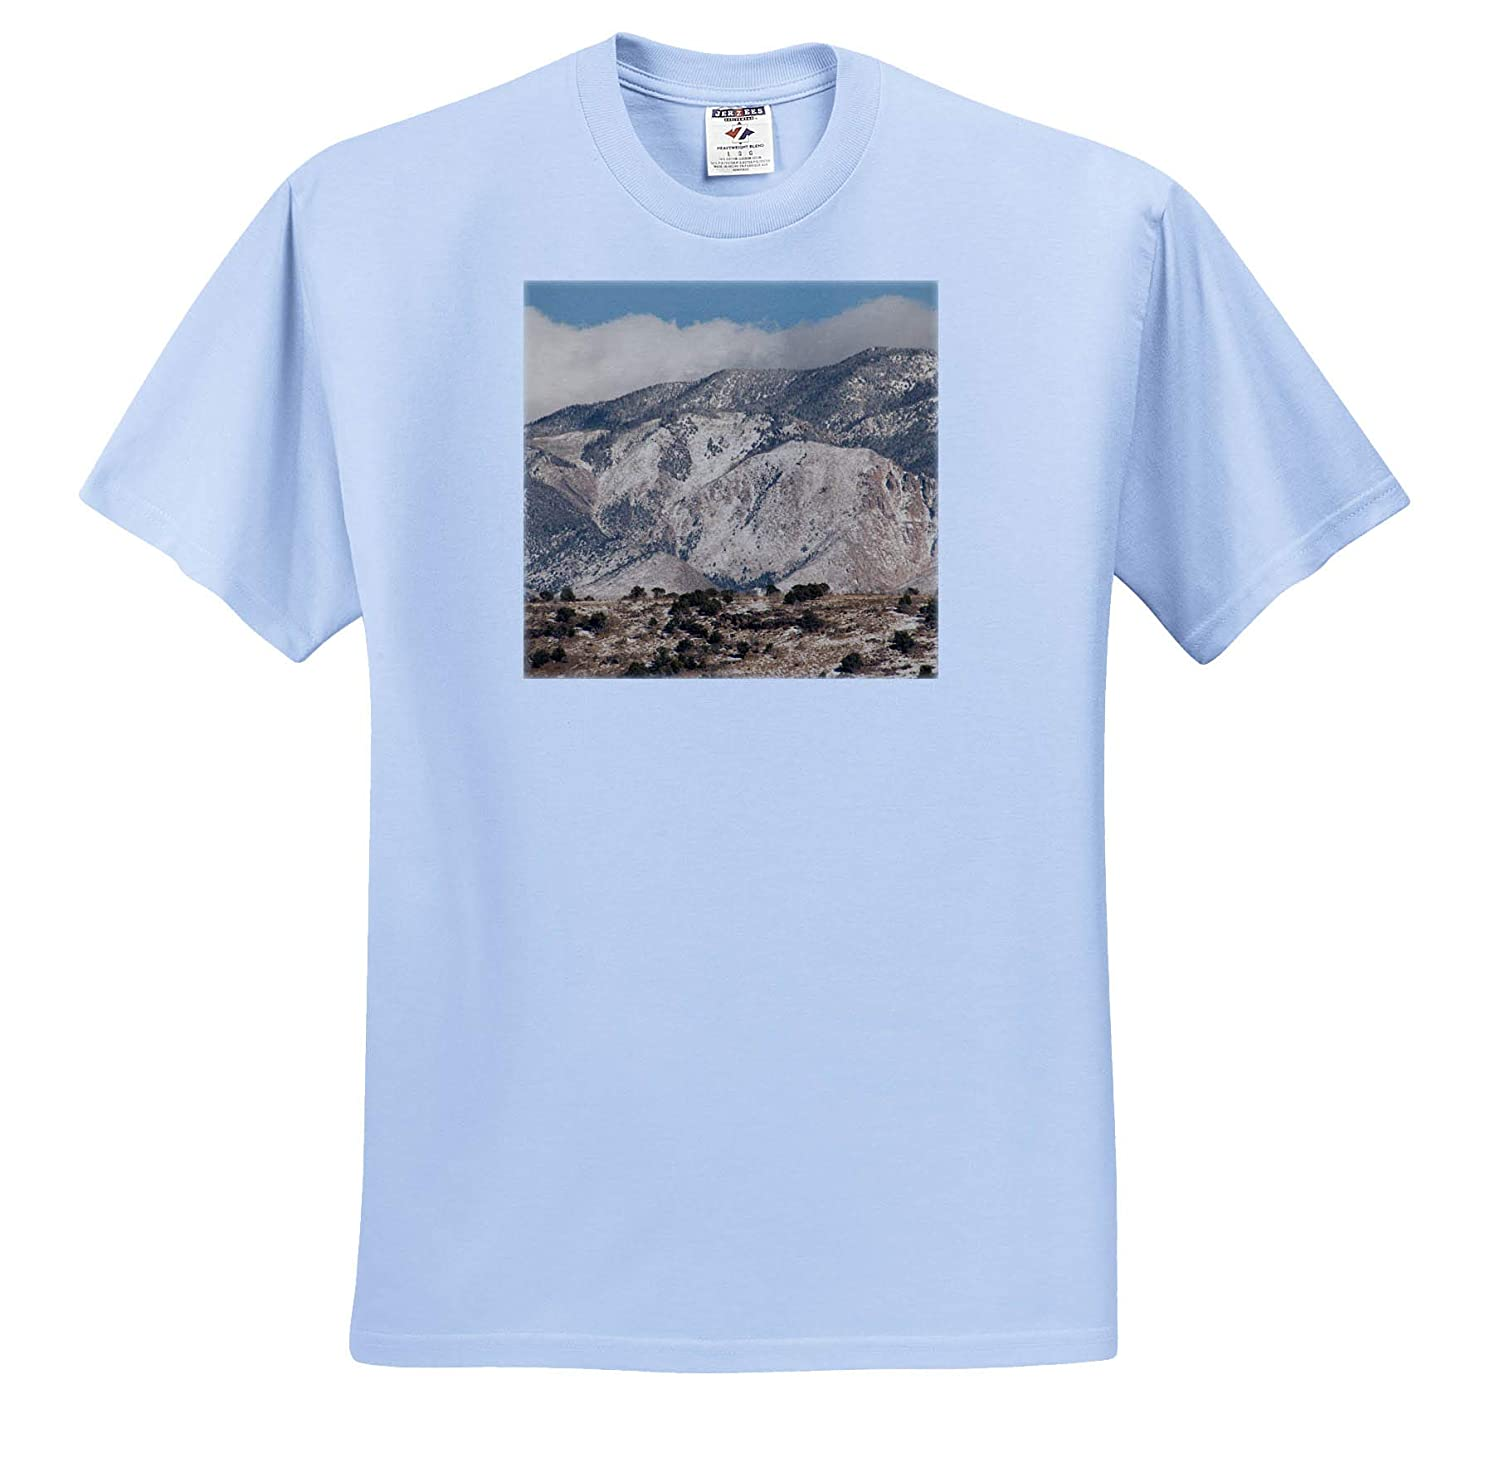 ts/_320089 Adult T-Shirt XL 3dRose Jos Fauxtographee- Mountain A Mountain Taken with a Warm Filter with Slight Snow